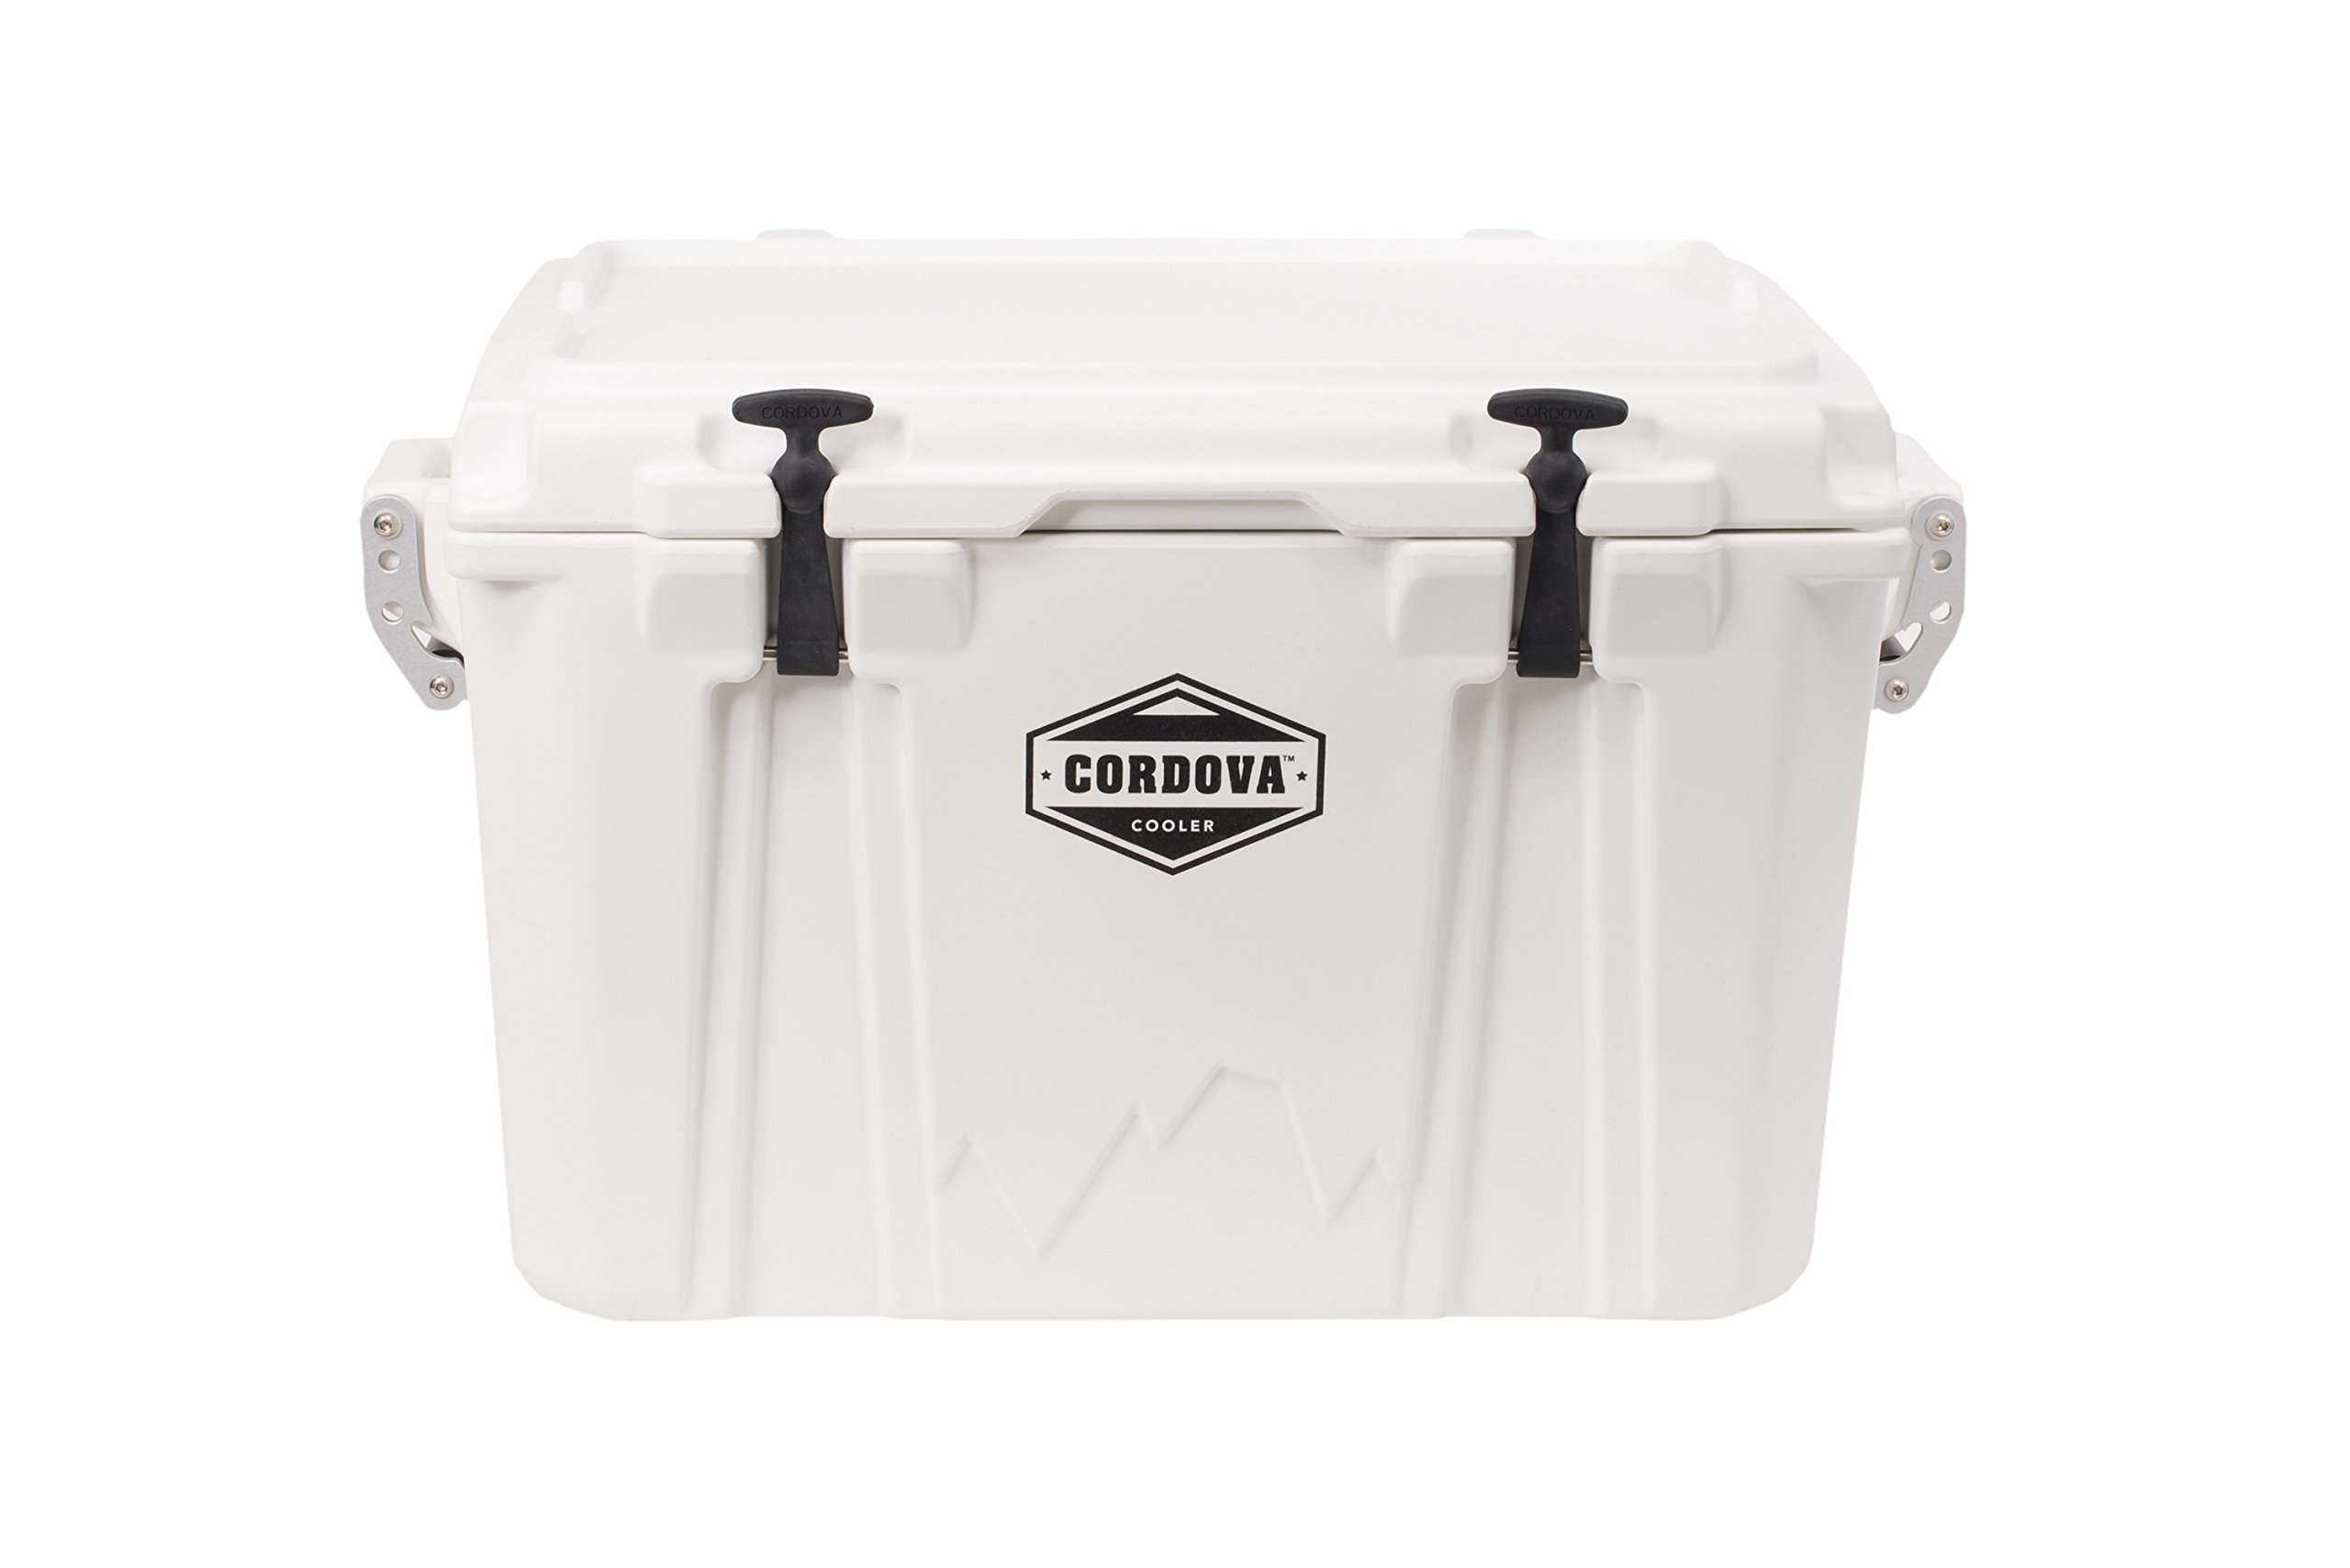 Cordova Coolers 50 Medium Cooler - White